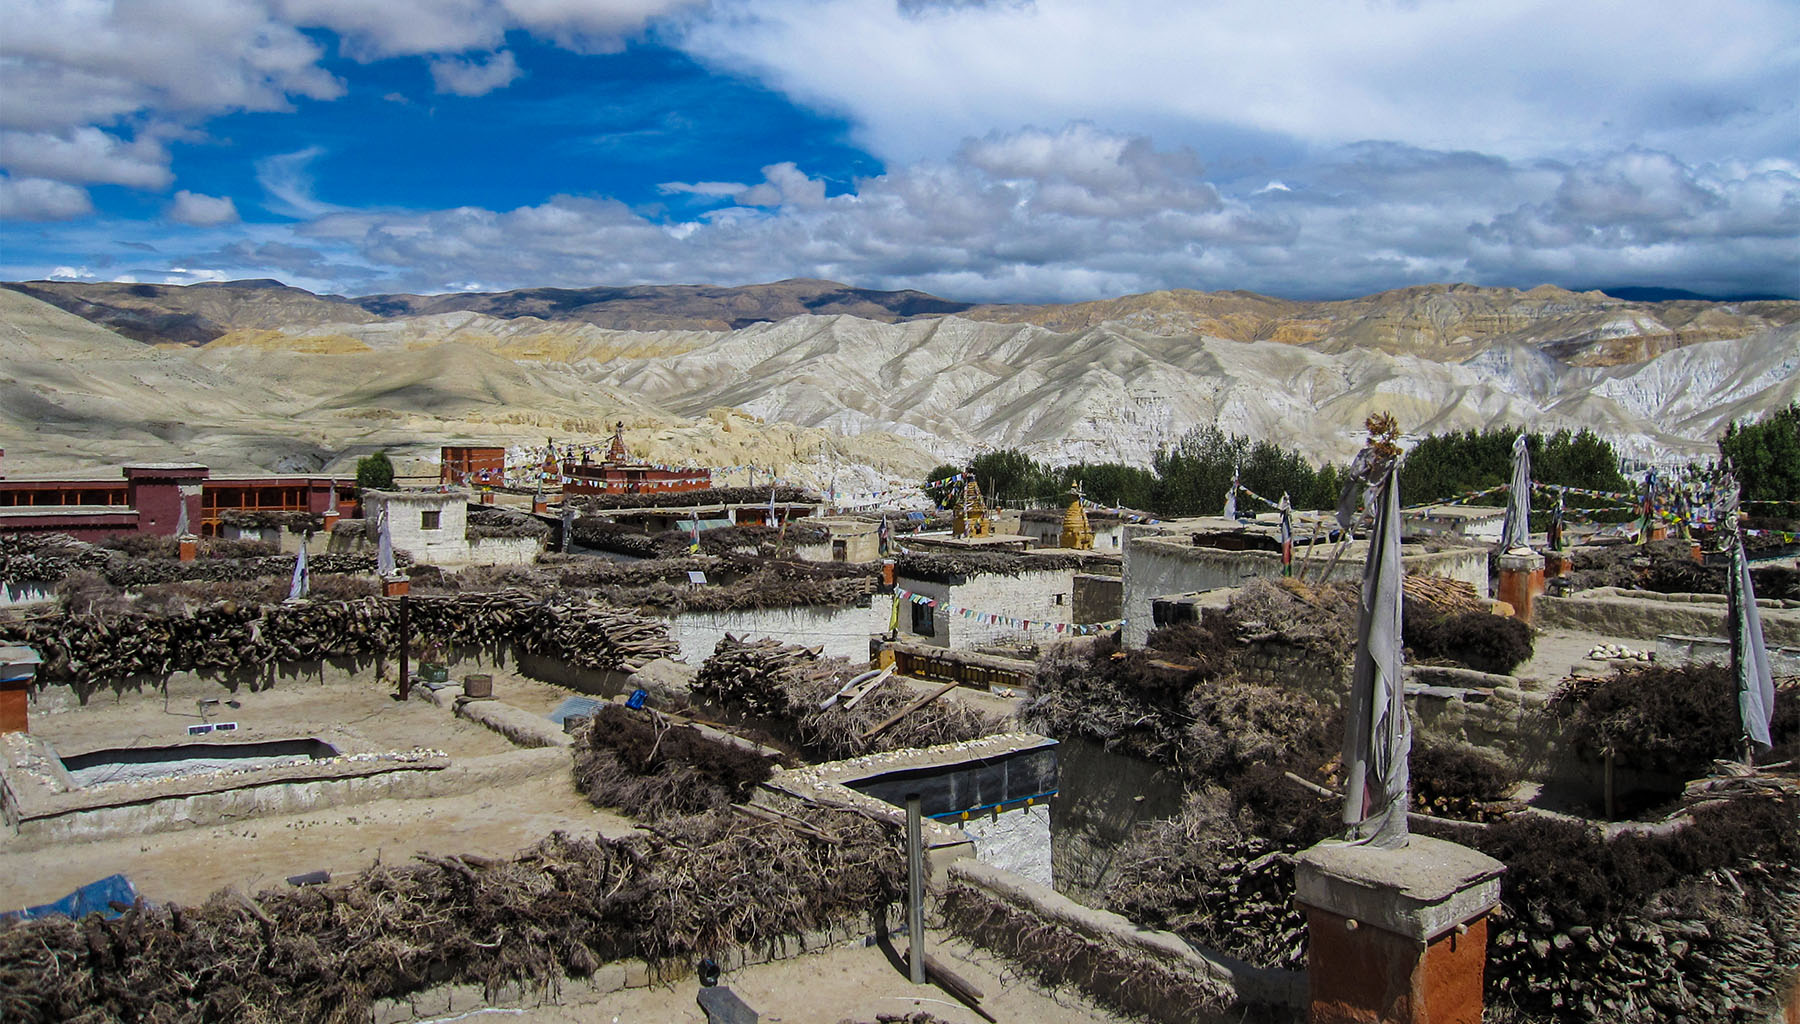 Most popular trekking places in Mustang